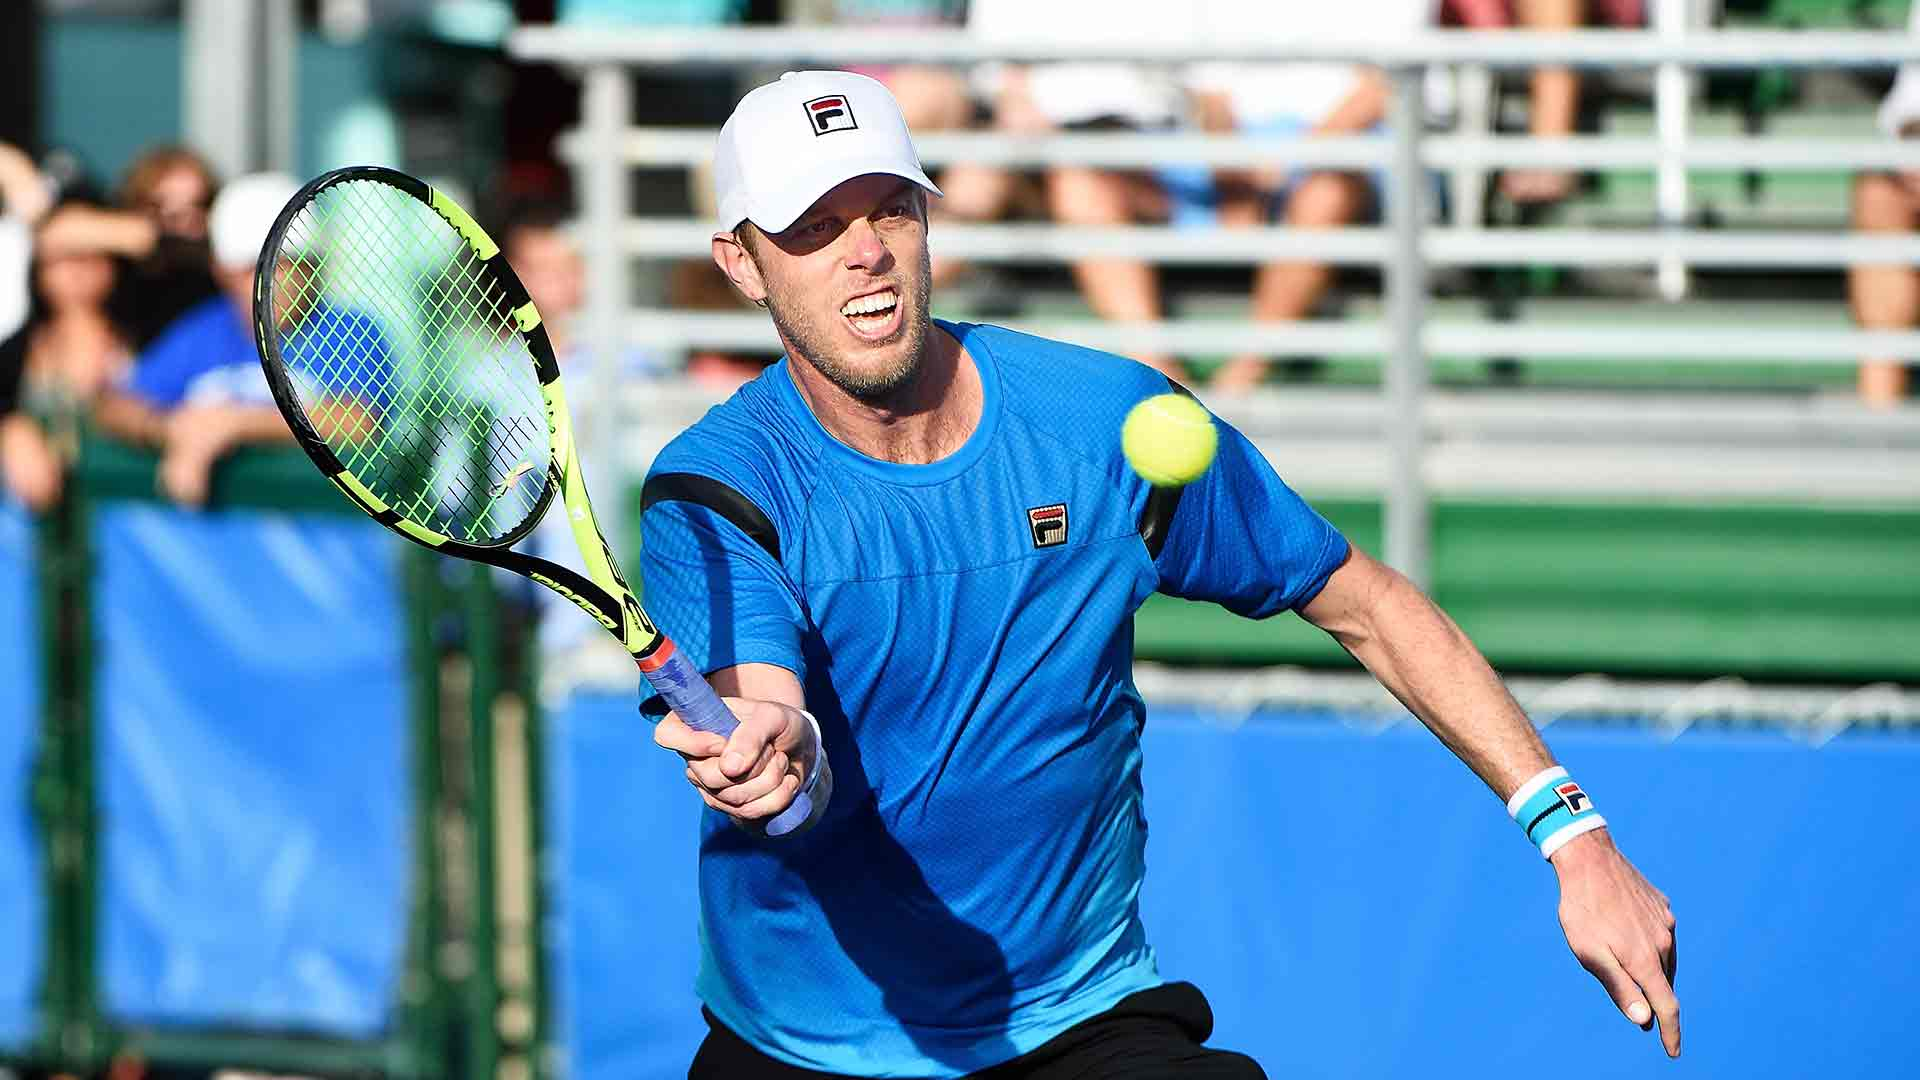 Sam Querrey secures his first tour-level title in four years in Delray Beach.